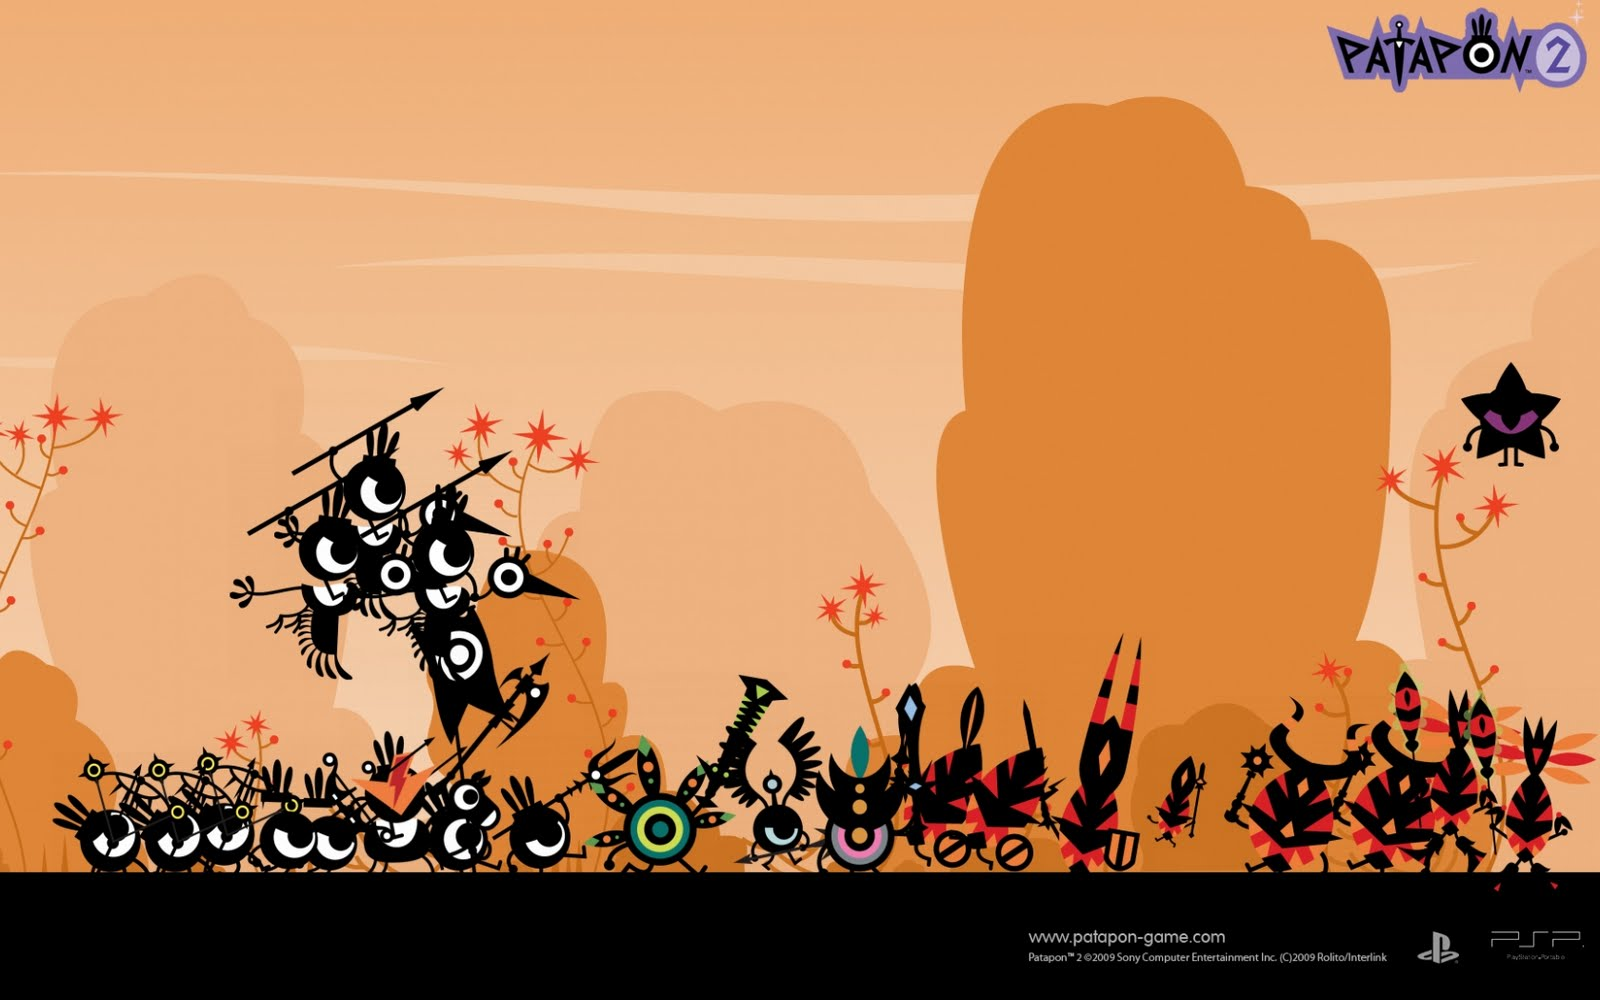 Patapon (ZOOM OUTTAA) Wallpaper_126874_1680_1050_US